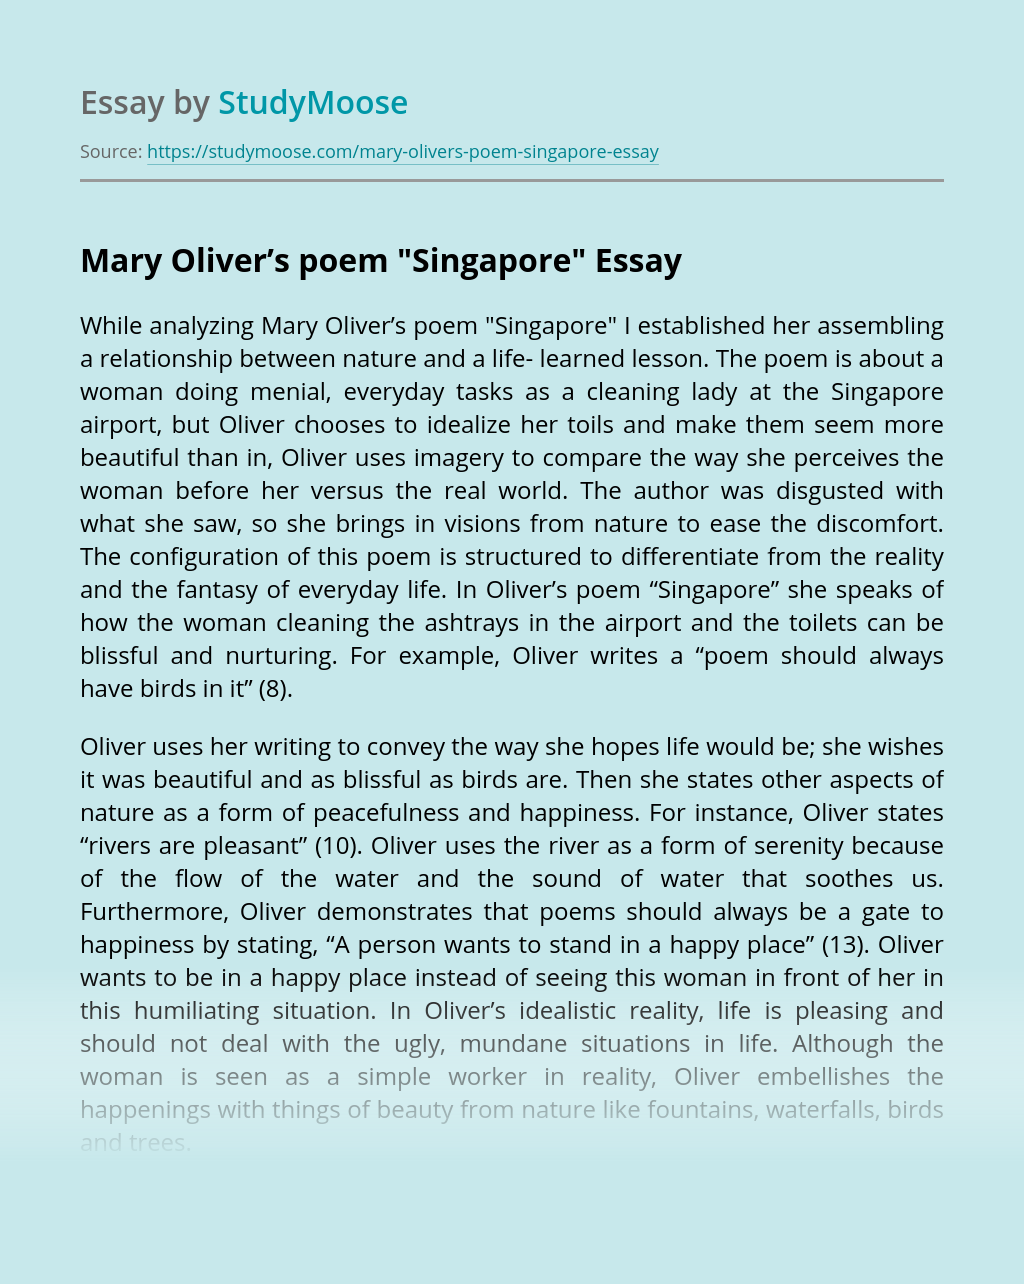 Mary Oliver's poem